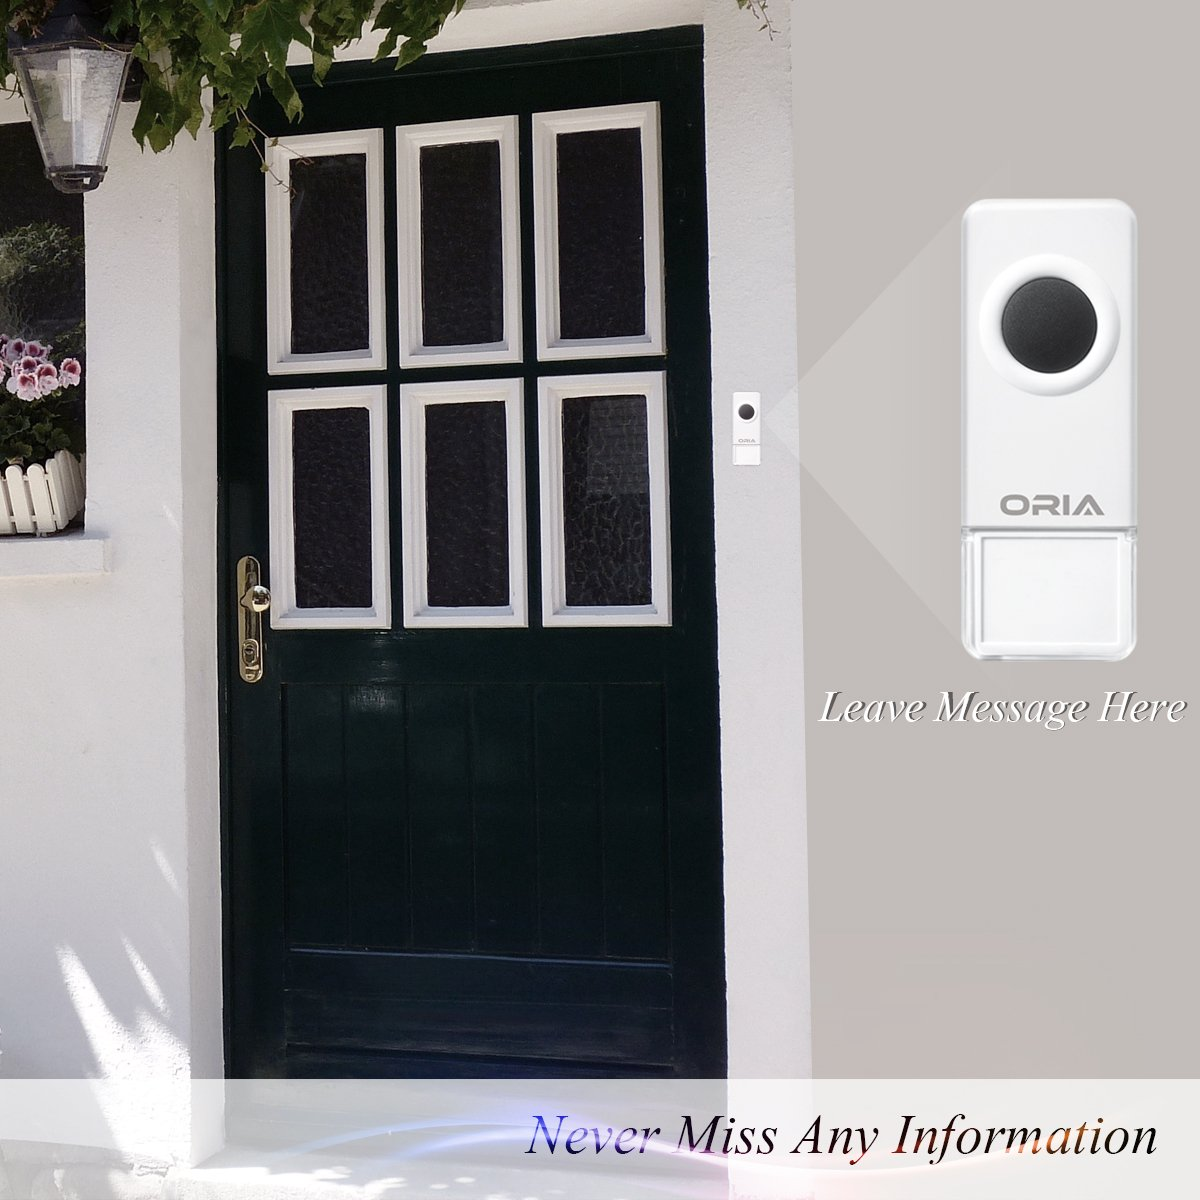 Portable Easy Chime Plug-in Wireless Doorbell Operating over 900 feet(open air), Range with 52 Chimes,CD Quality Sound and LED Flash.No Batteries Required by AMIR (Image #6)